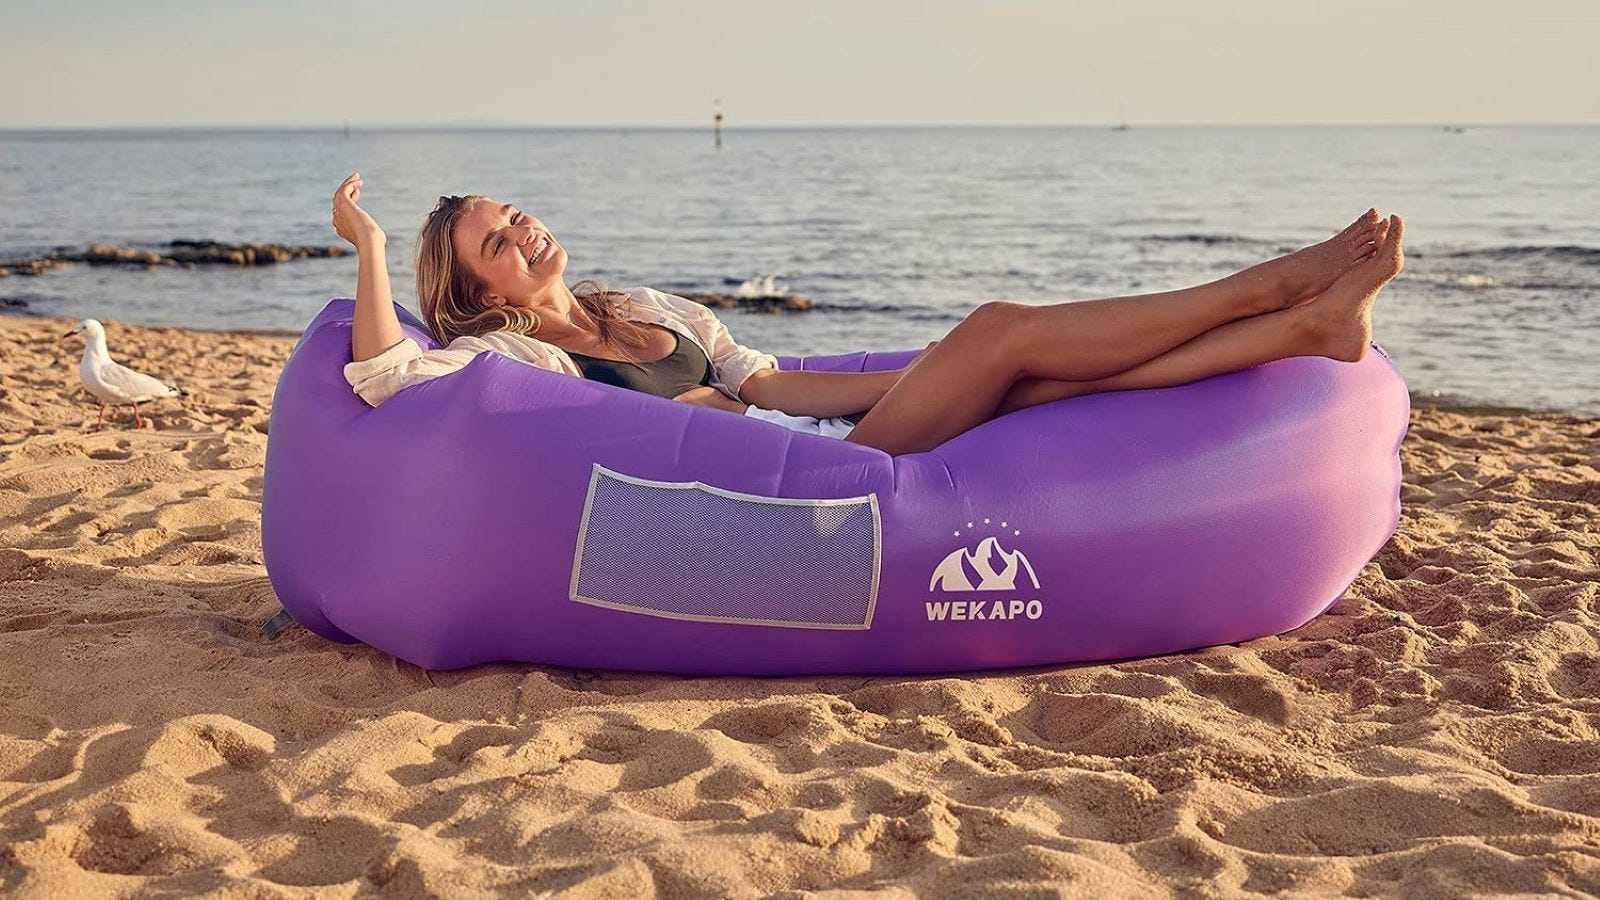 A woman at the beach in a purple Wekapo Lounger.